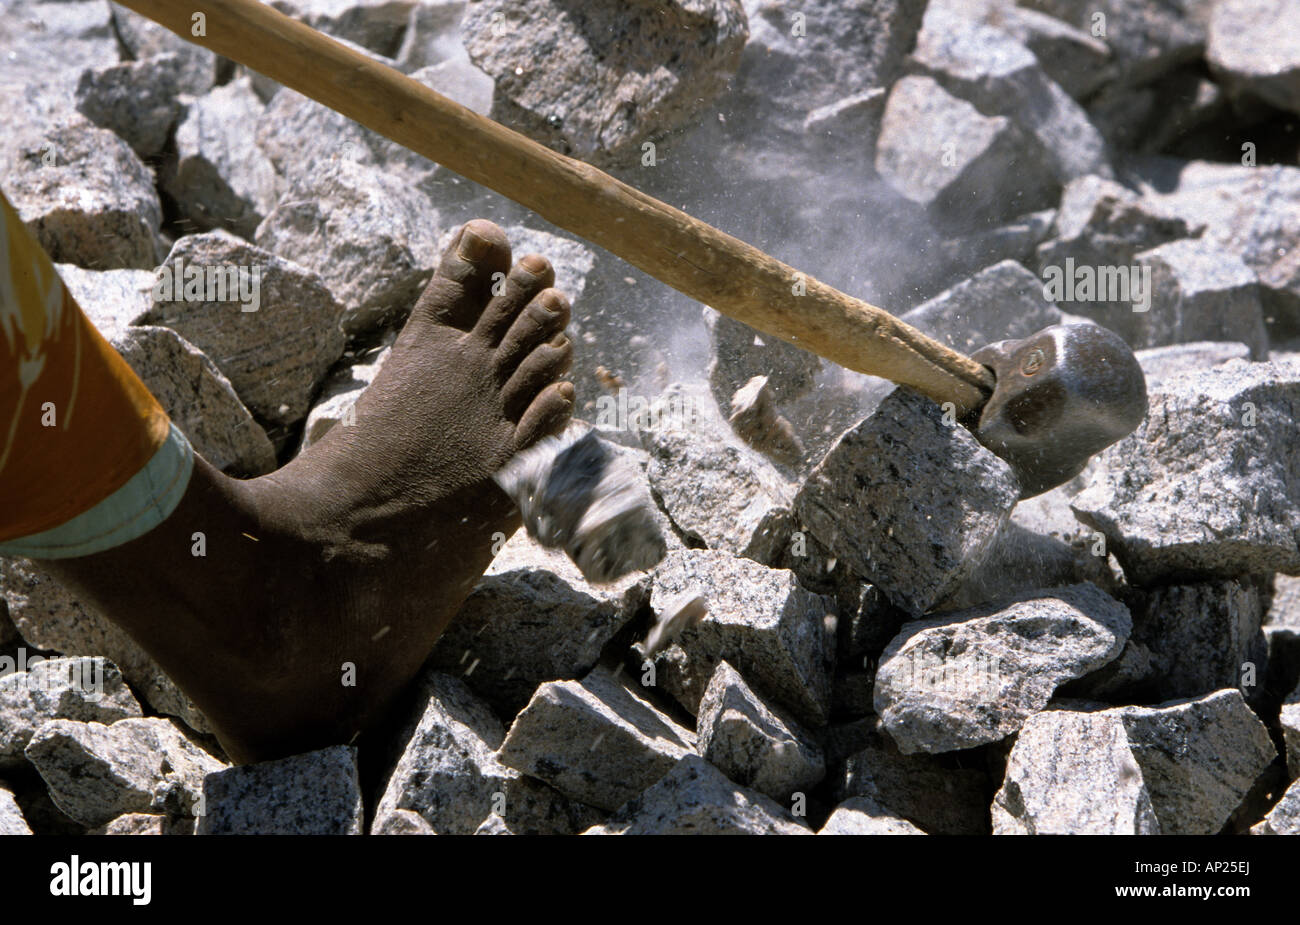 India: woman from the cast of the untouchables working barefoot in a quarry near Madurai - Stock Image